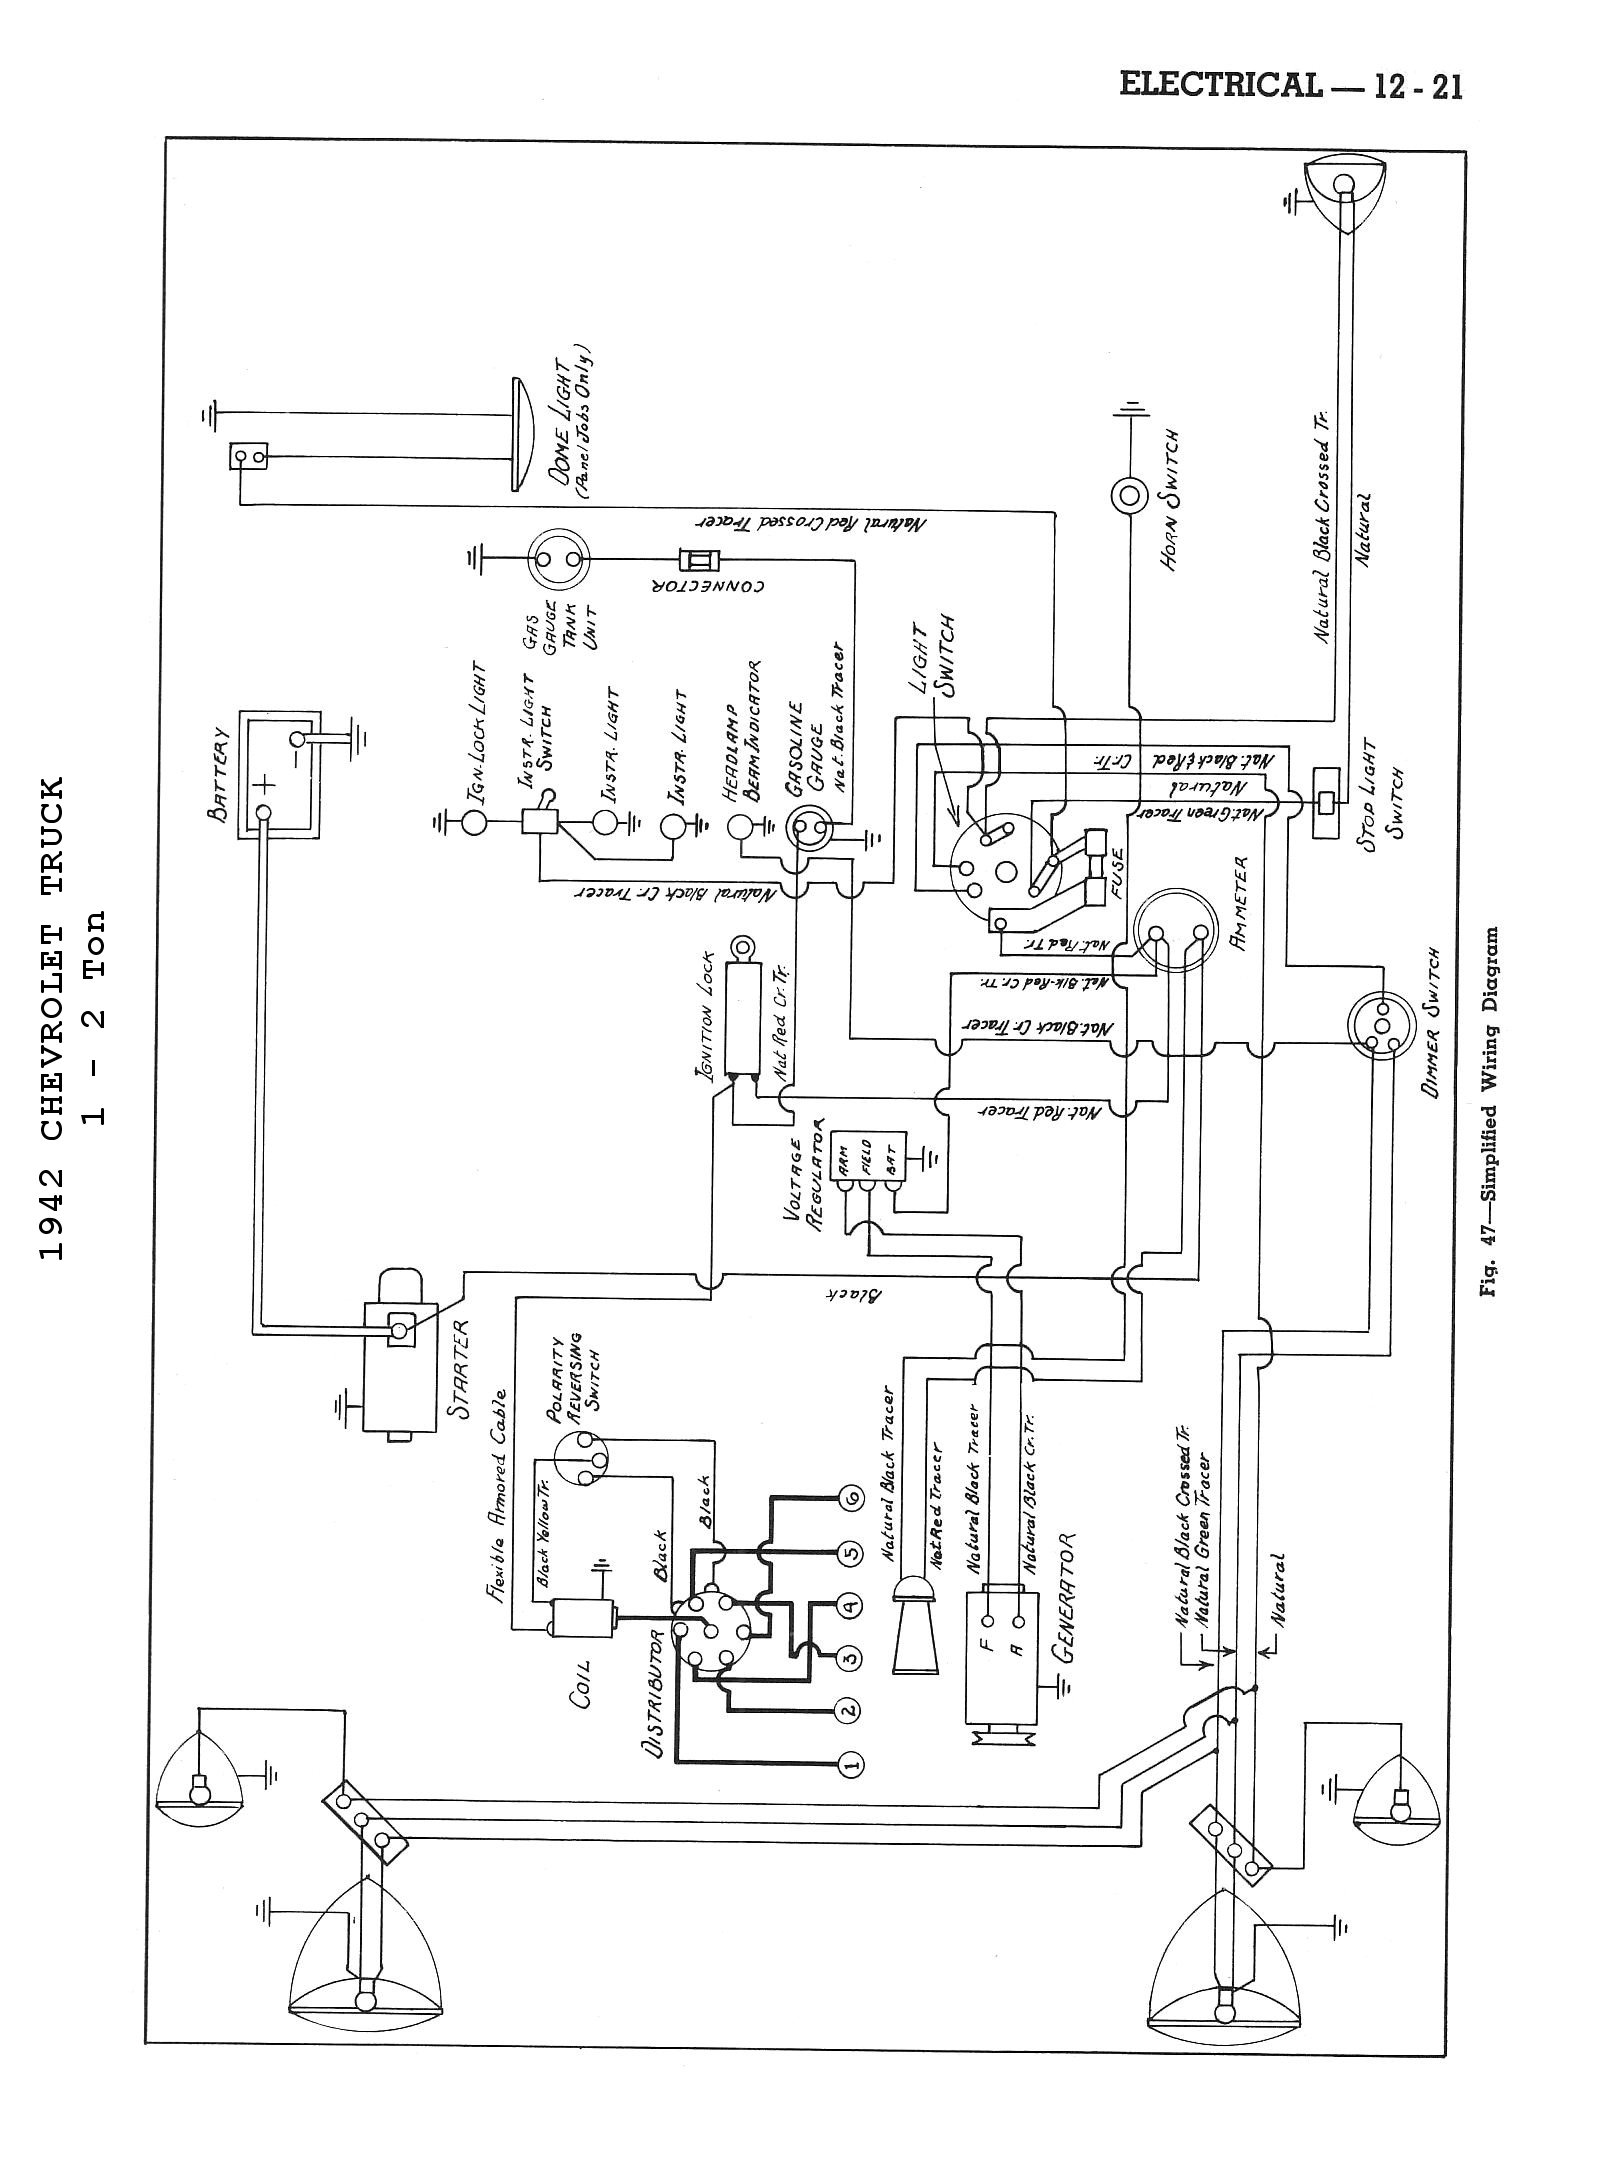 chevy wiring diagrams rh chevy oldcarmanualproject com 93 Chevy Truck Wiring Diagram Chevy Wiring Harness Diagram